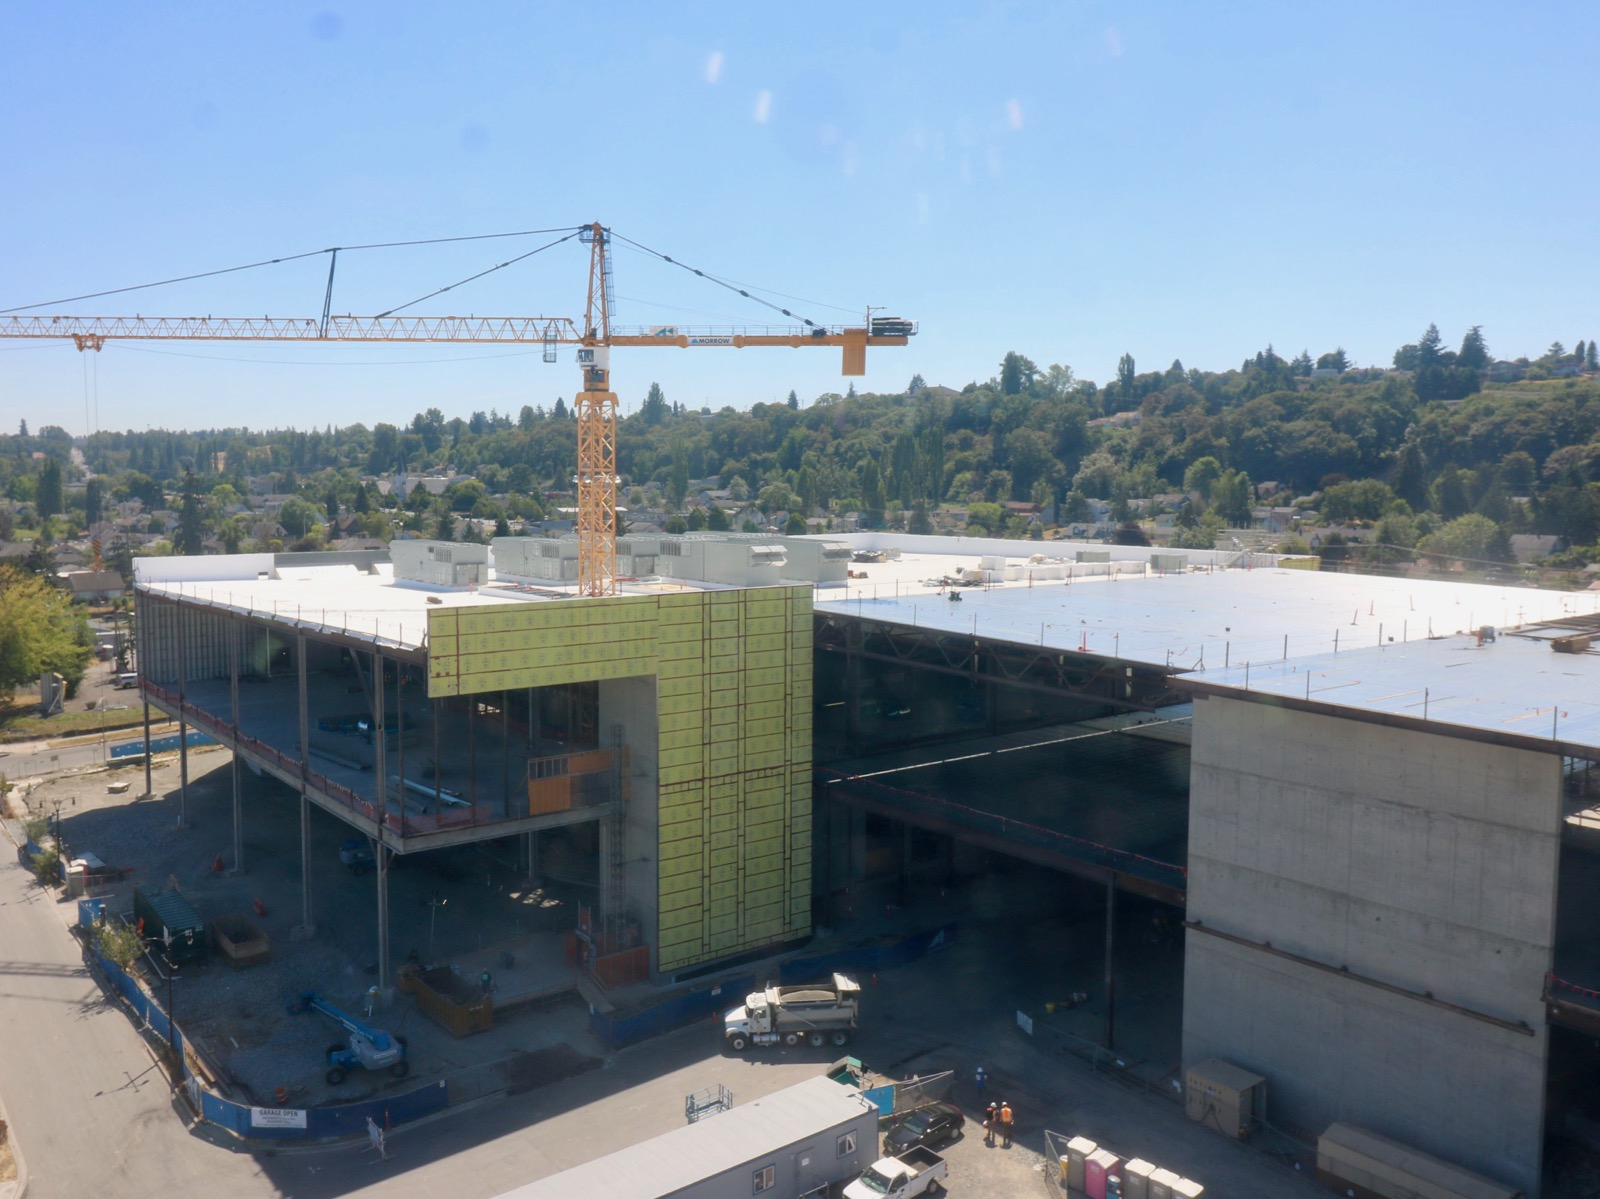 Puyallup Tribe makes good progress on $370 million casino expansion